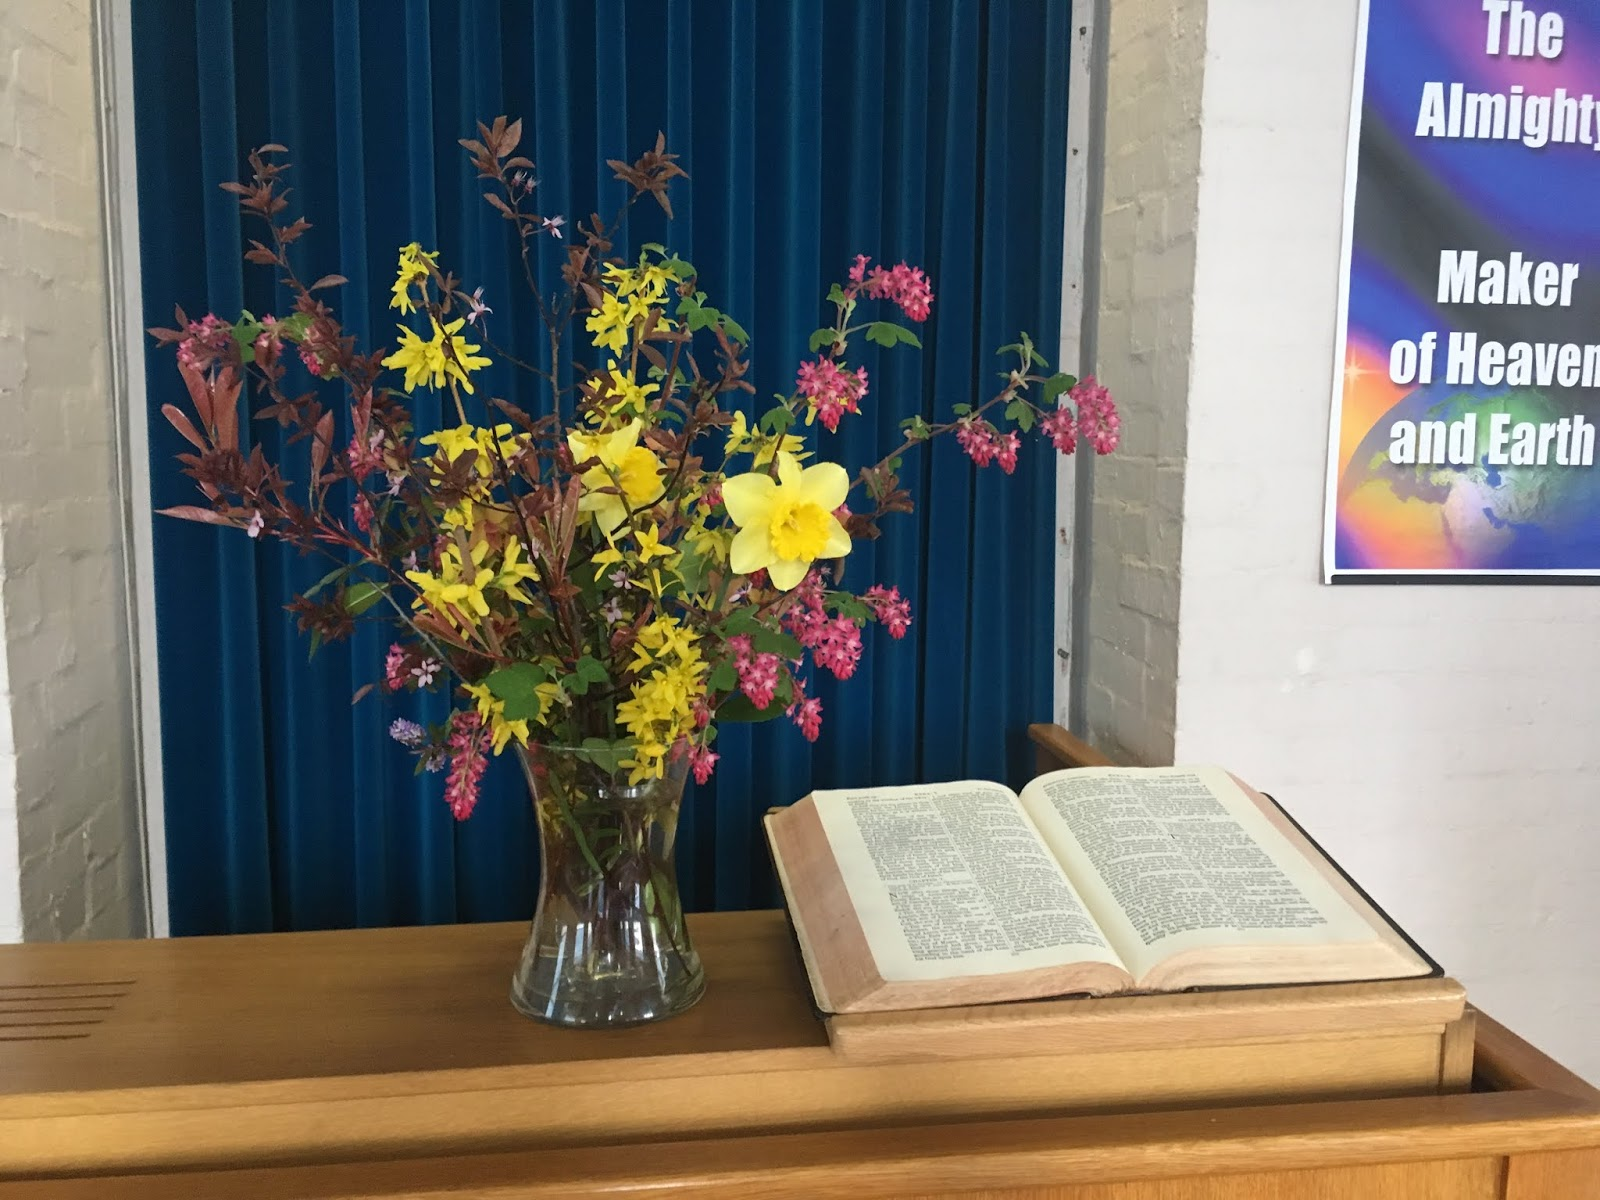 Flowers in a vase on a table with an open Bible next to them